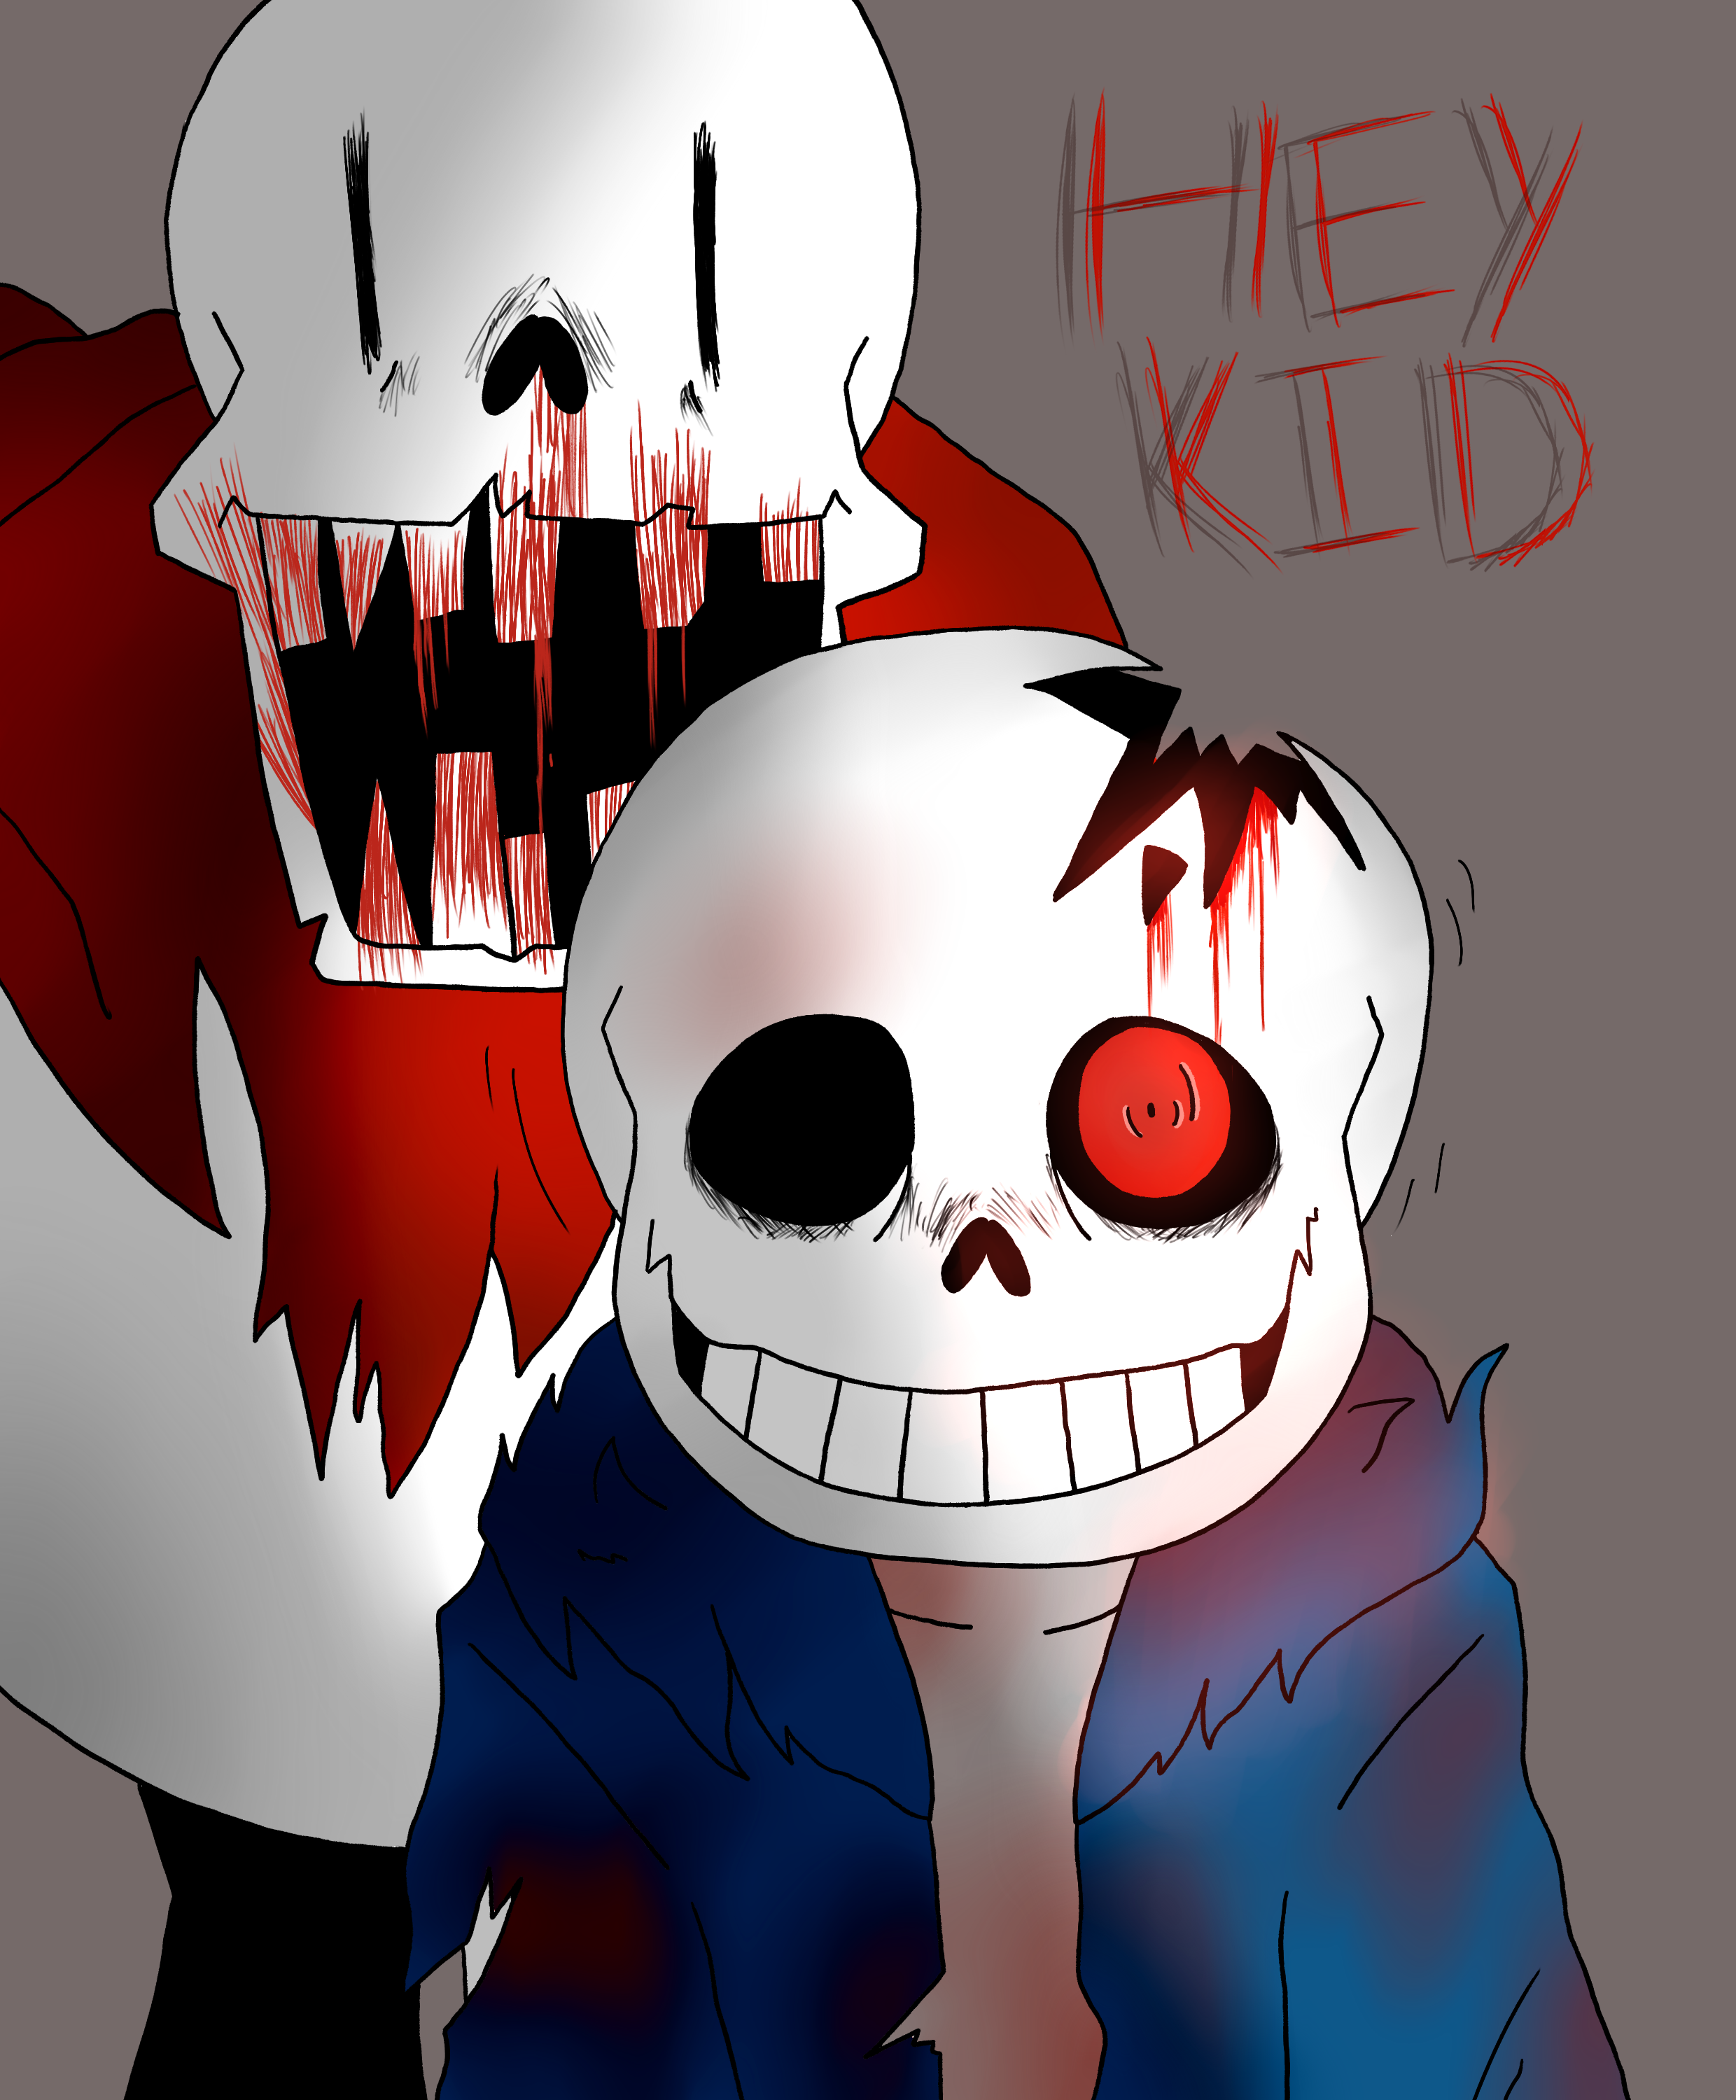 Horrortale - Sans and Papyrus by PaperPlushie on DeviantArt